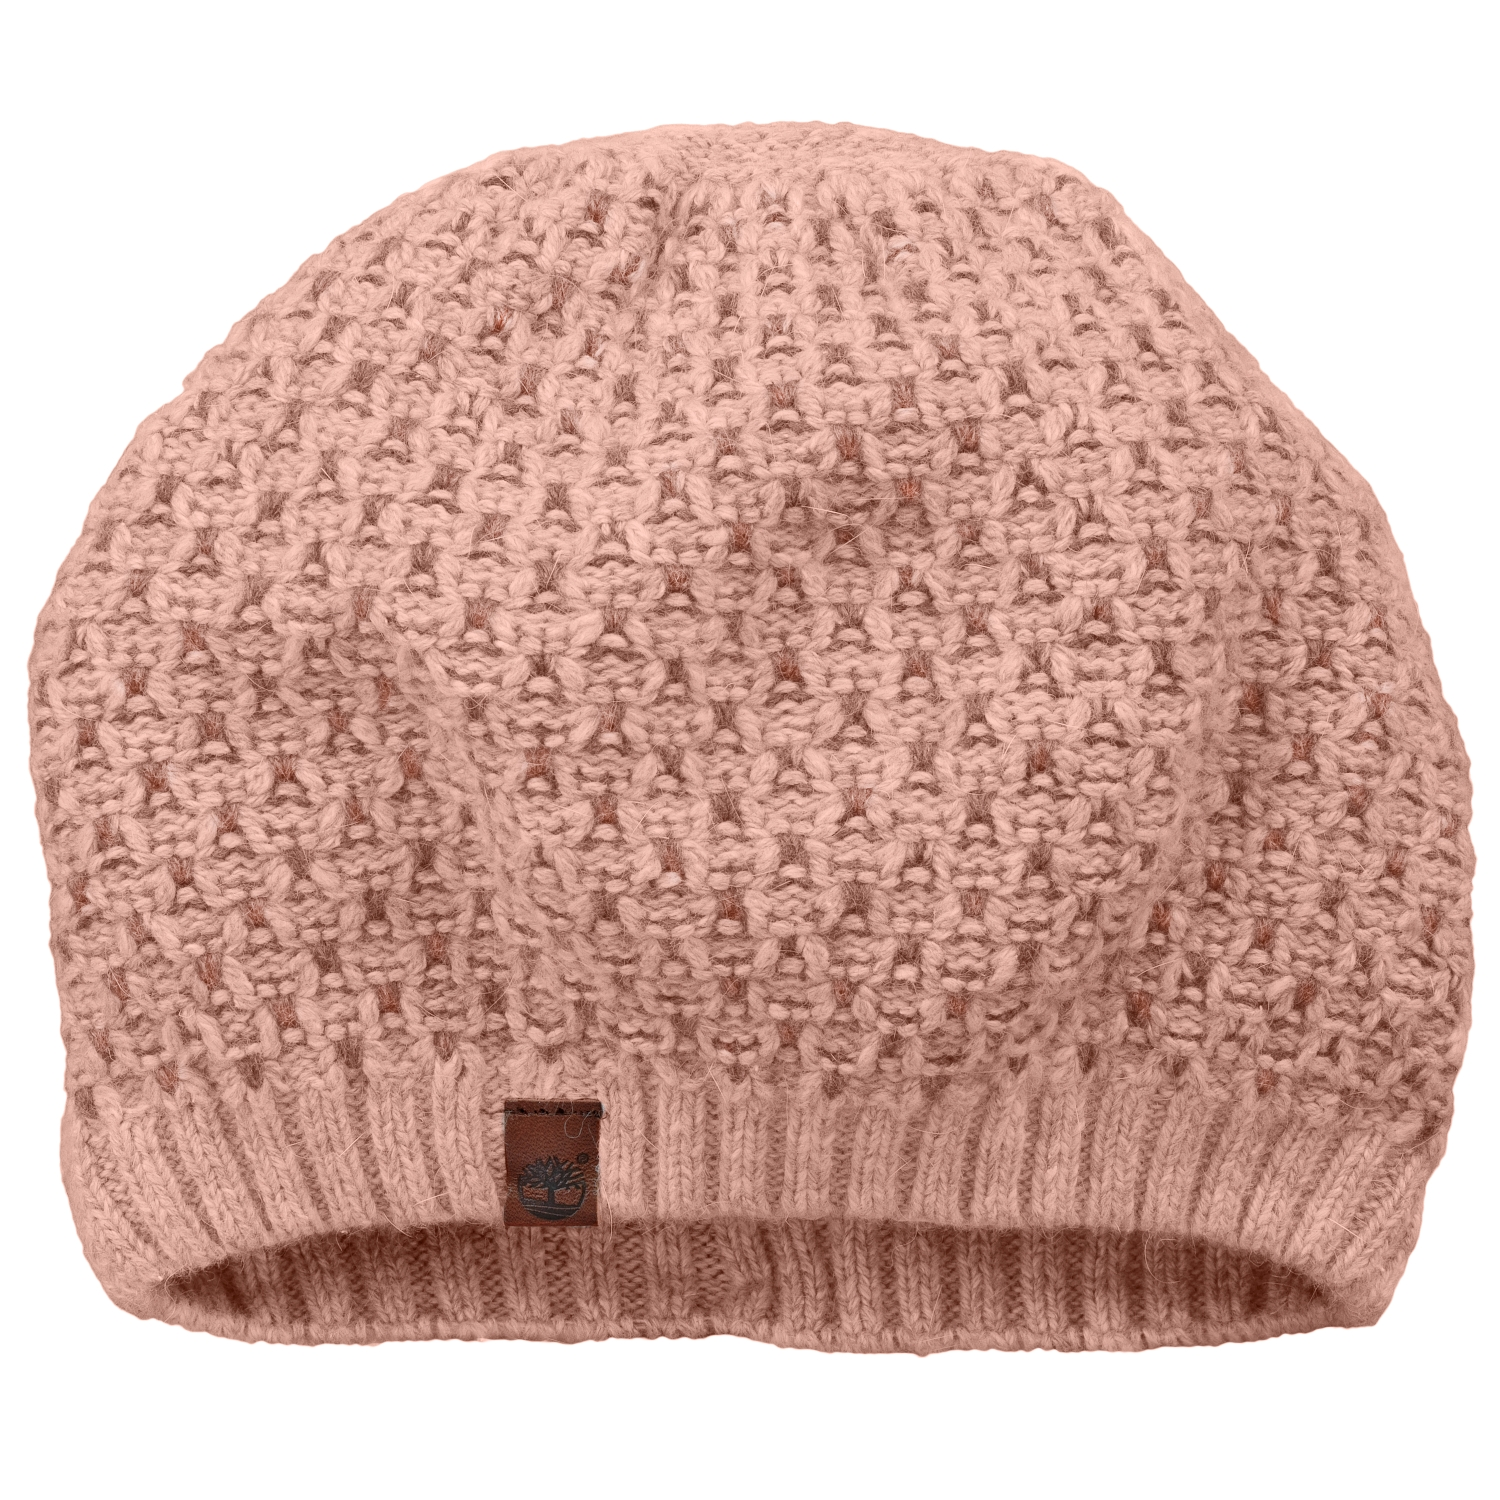 Enter to win this Timberland beanie and more!